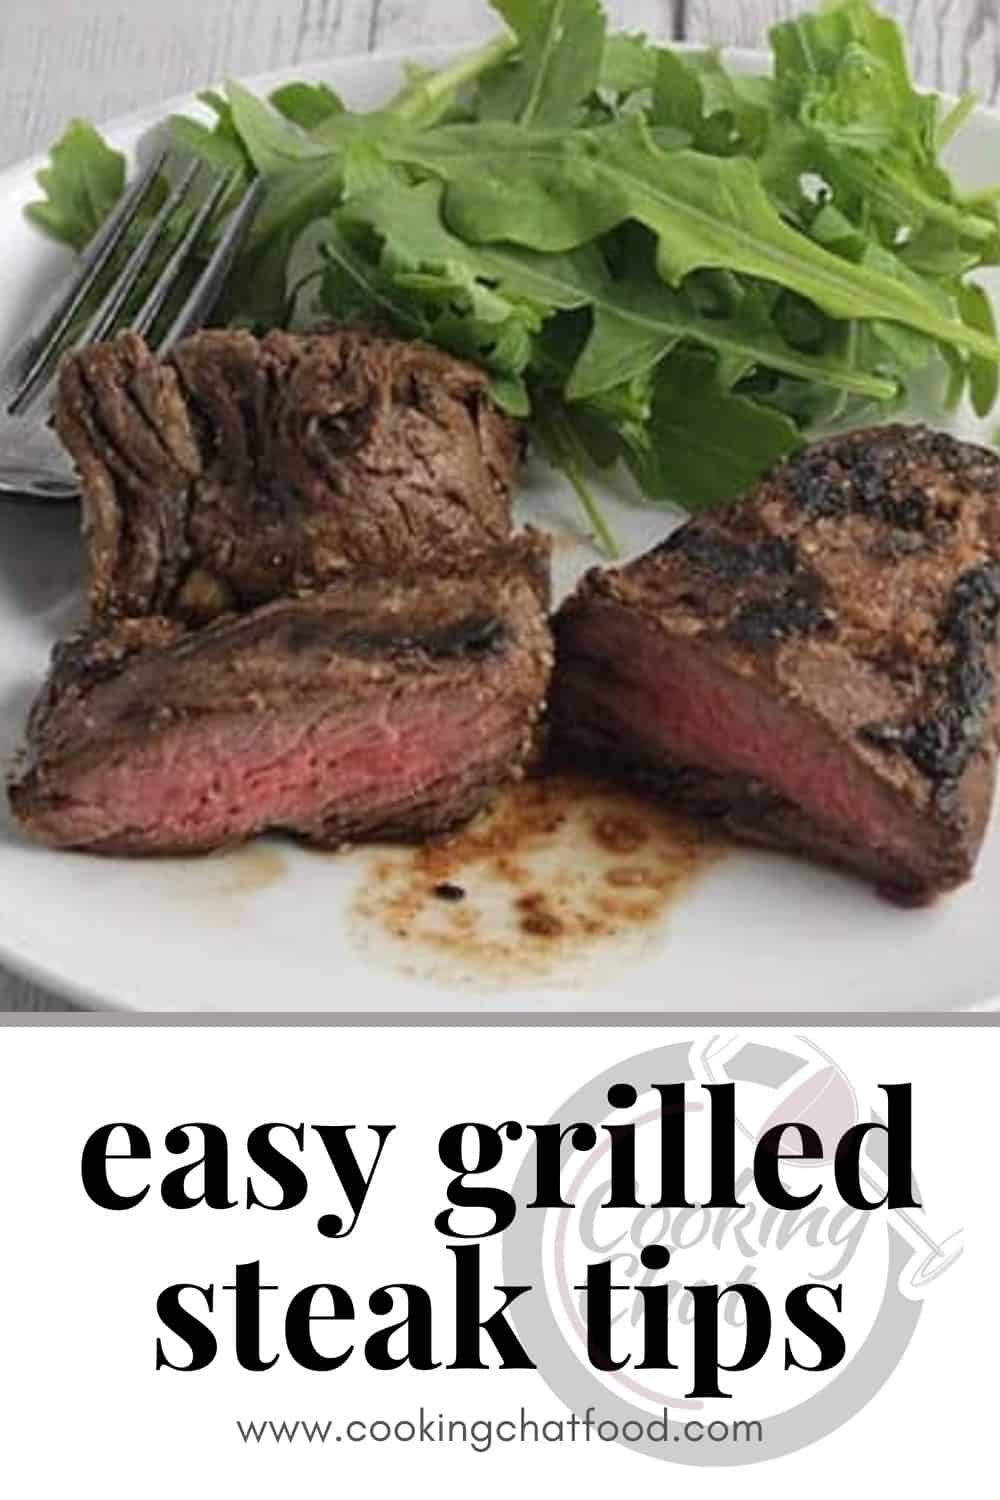 grilled steak tips served on a white plate with a side of greens.